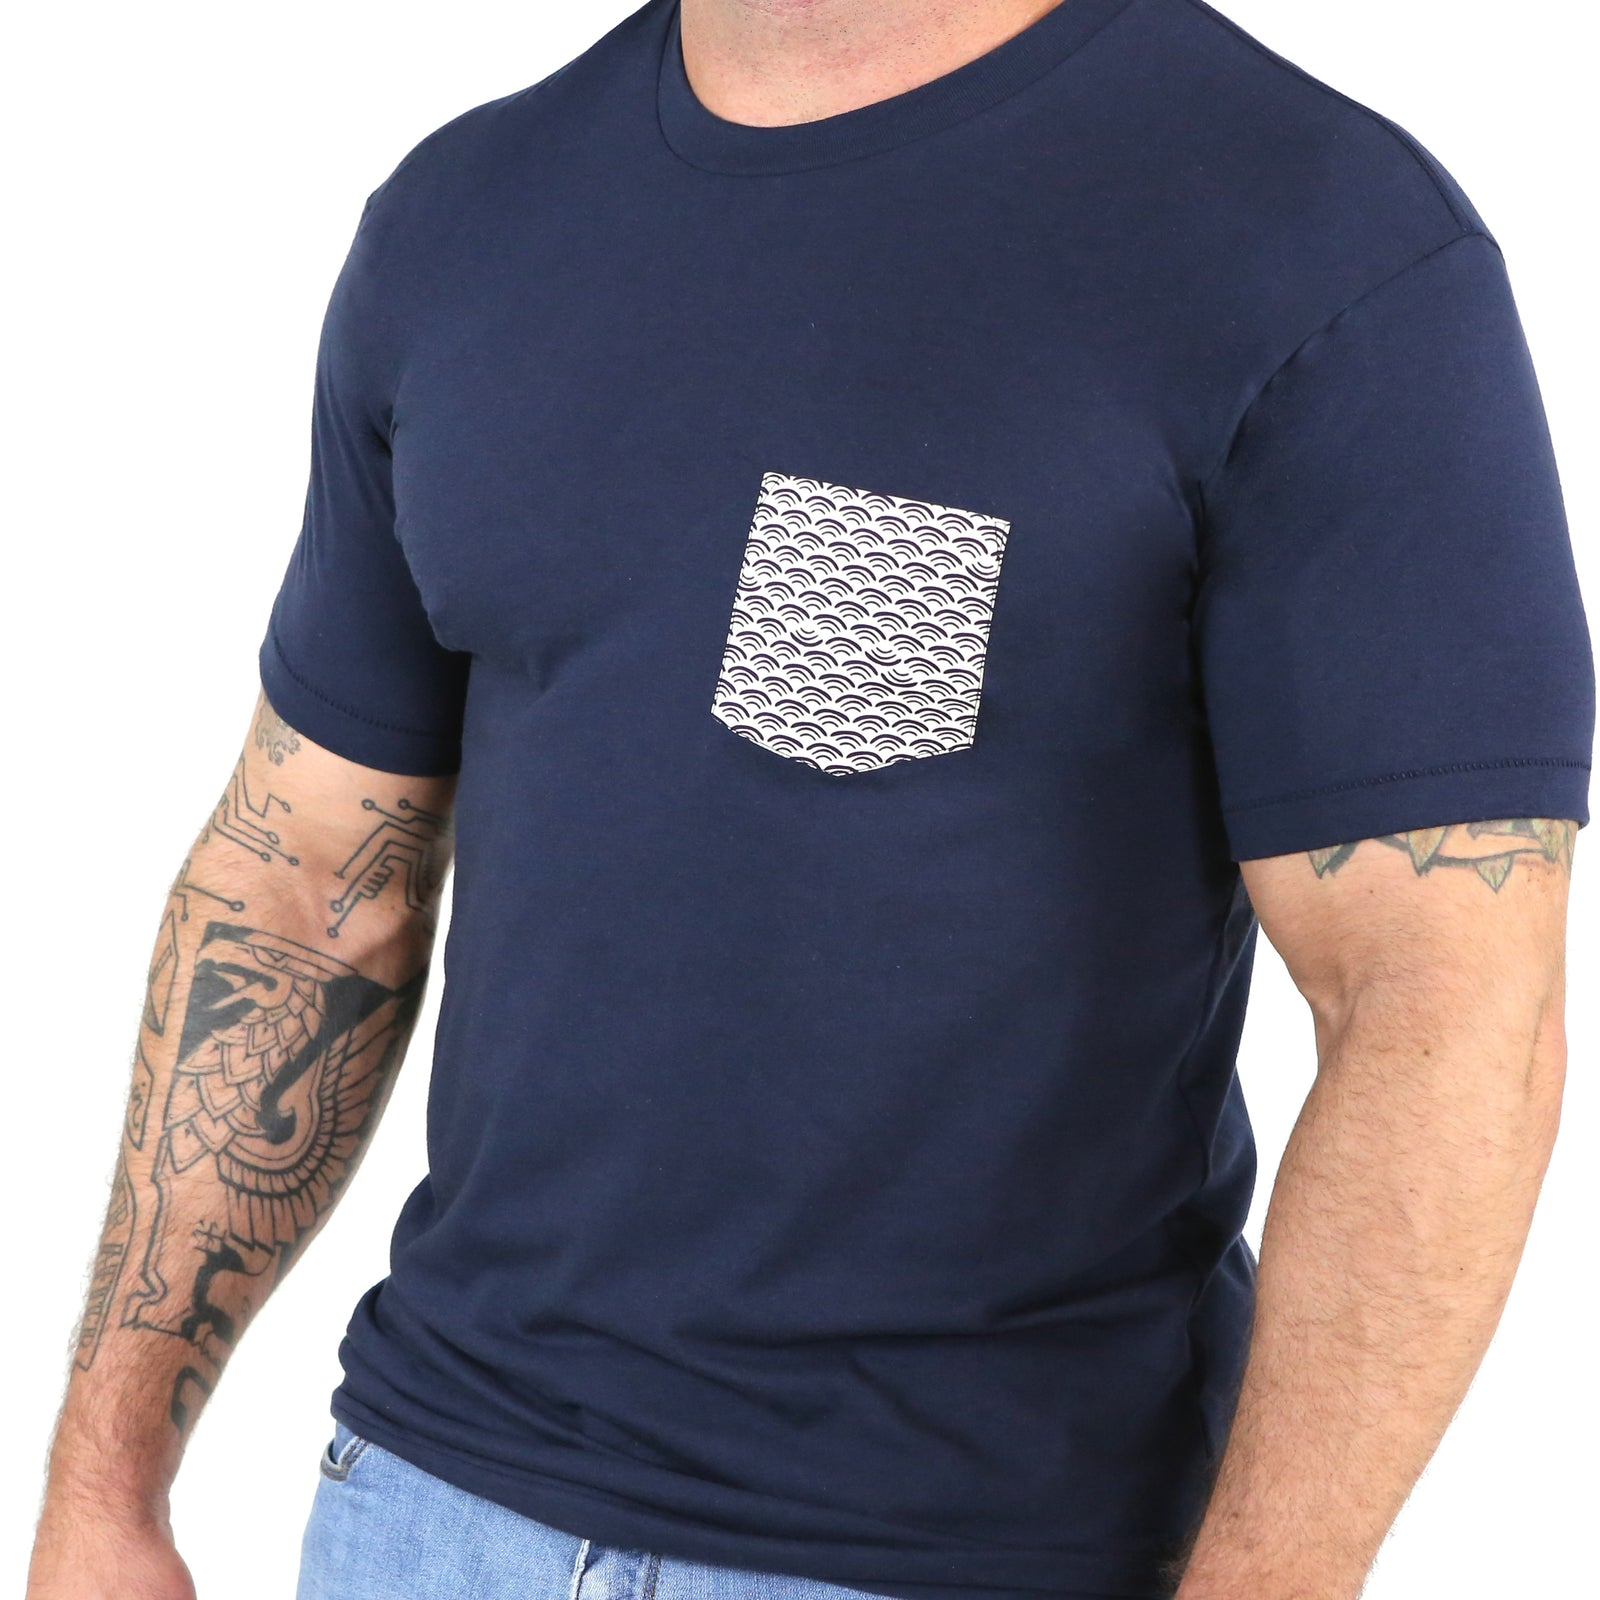 Navy with Wave Print Pocket Tee  Only Size S Available